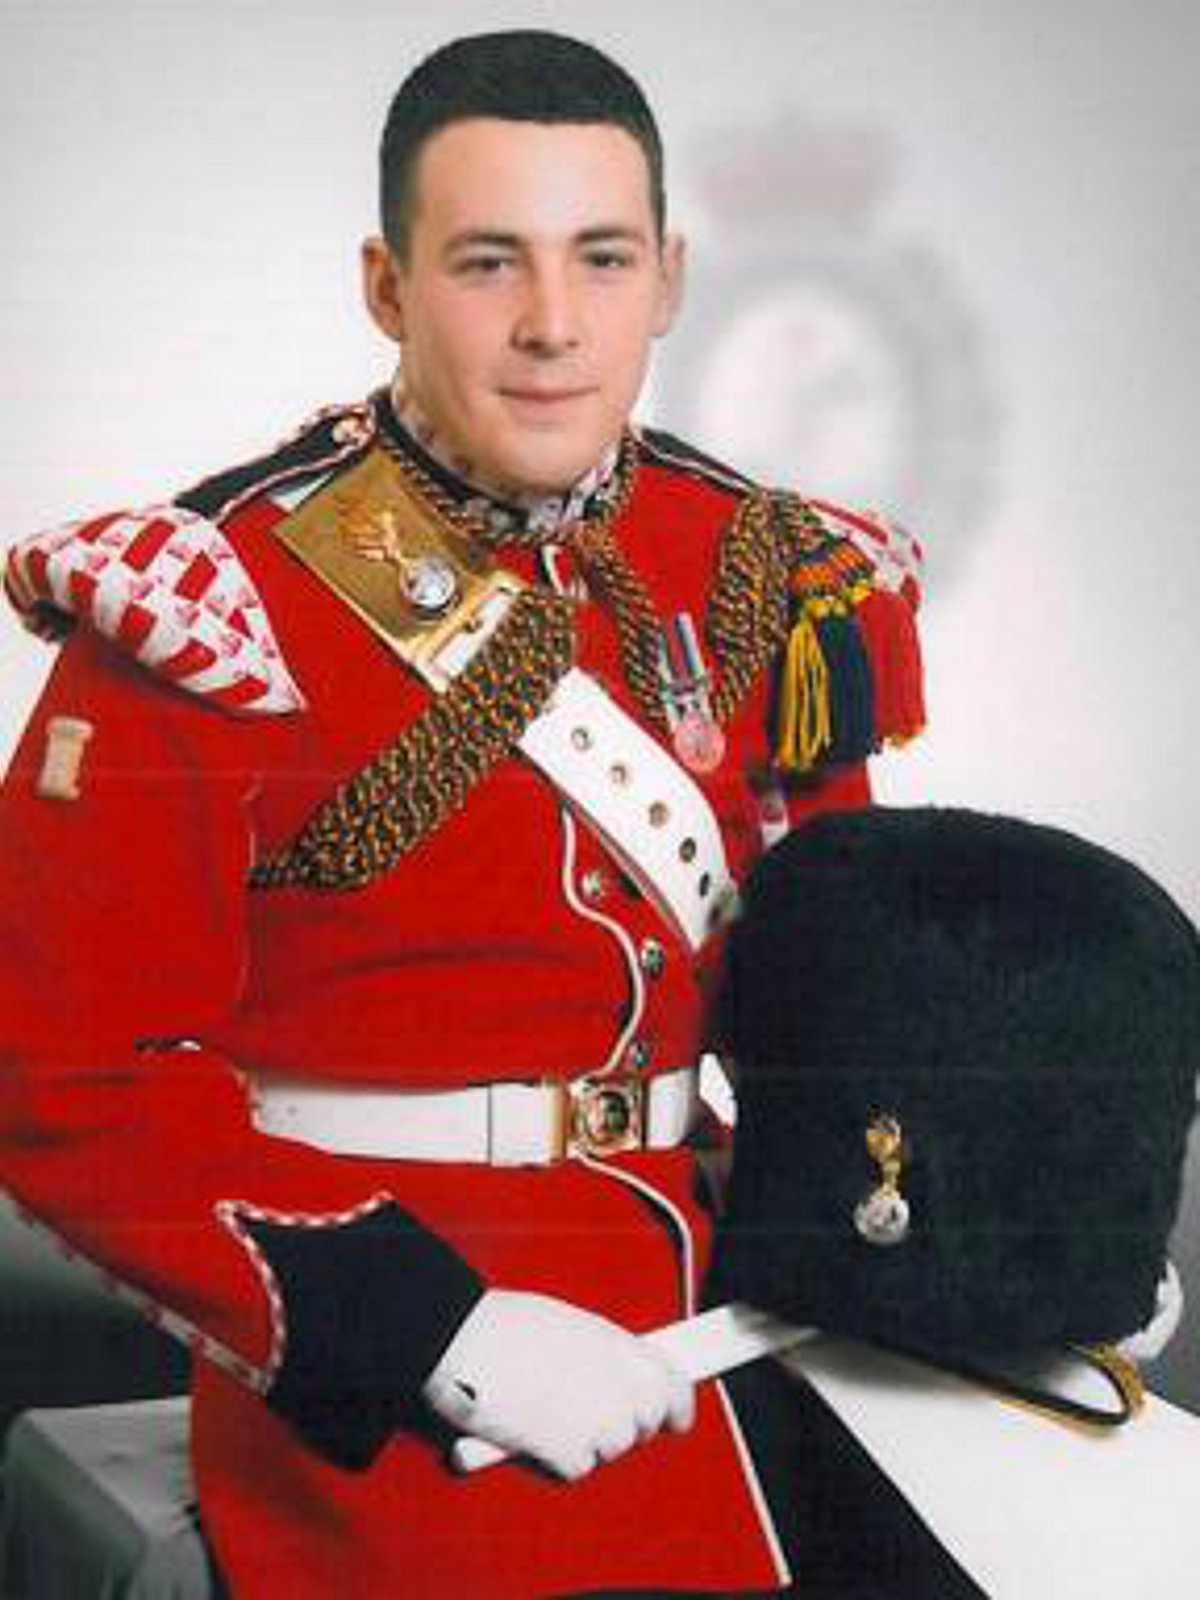 No Woolwich memorial for Lee Rigby despite 12,000-strong campaign